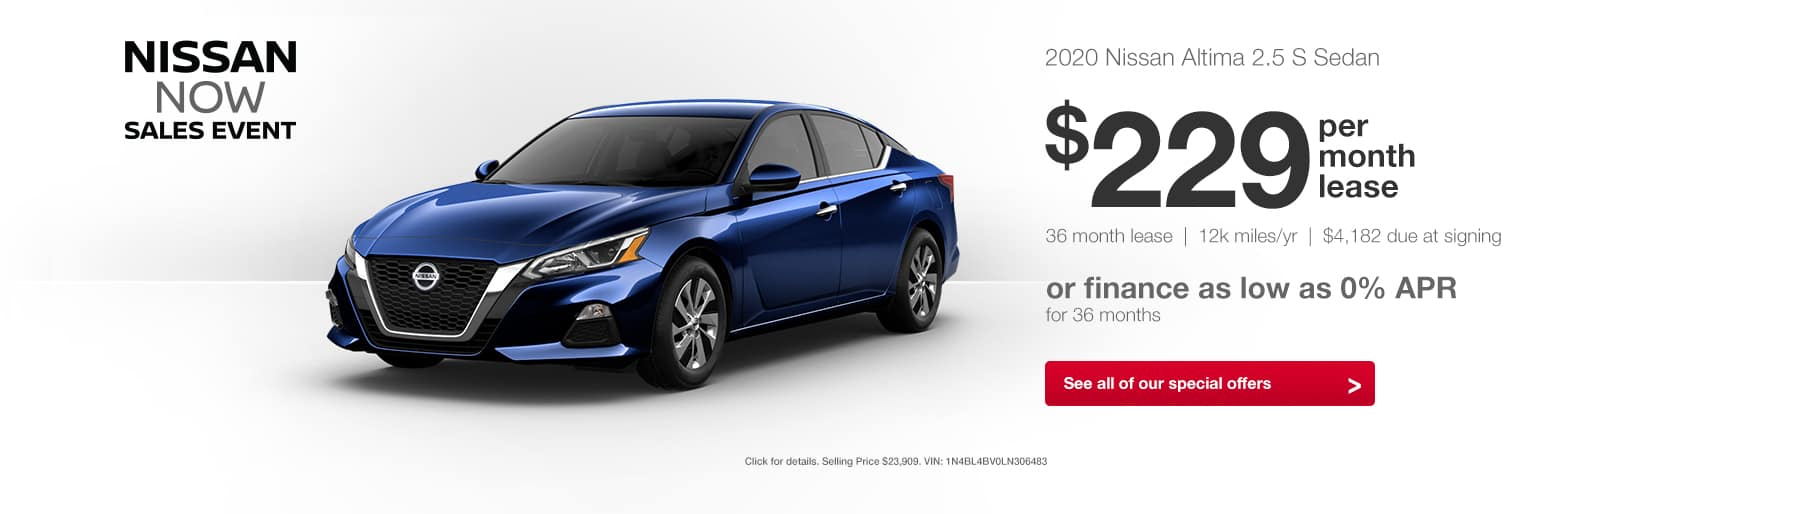 2020 Nissan Altima Nissan Now Sales Event Lease Finance Special